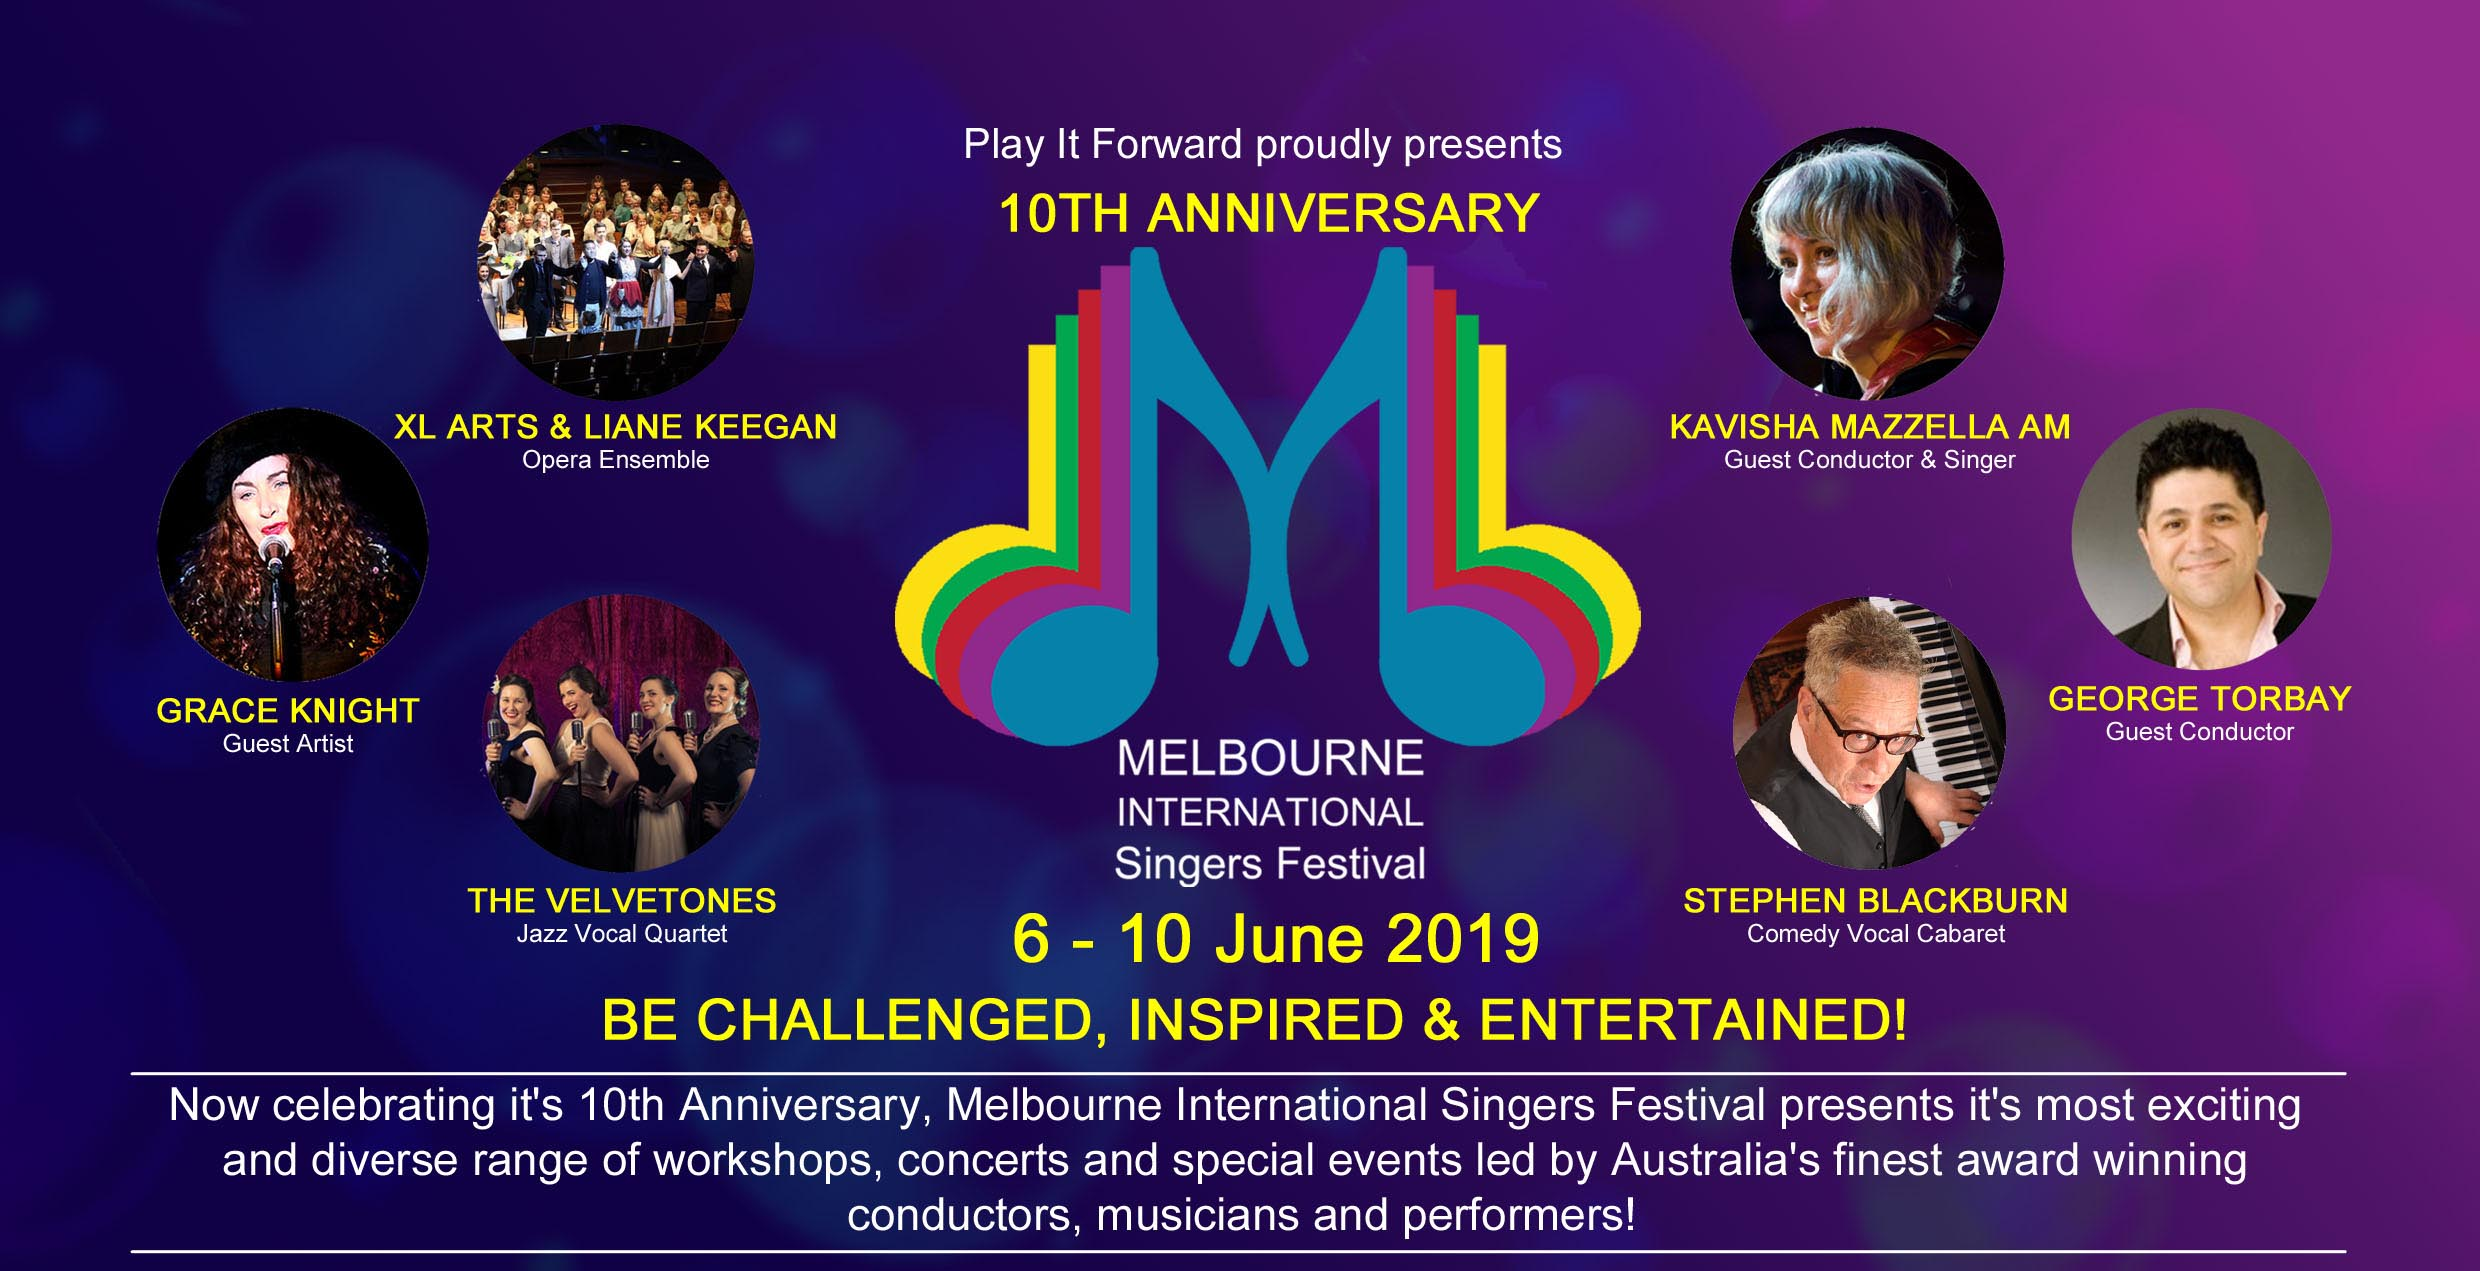 MISF events 2019 flyer - final trybooking cover.jpg